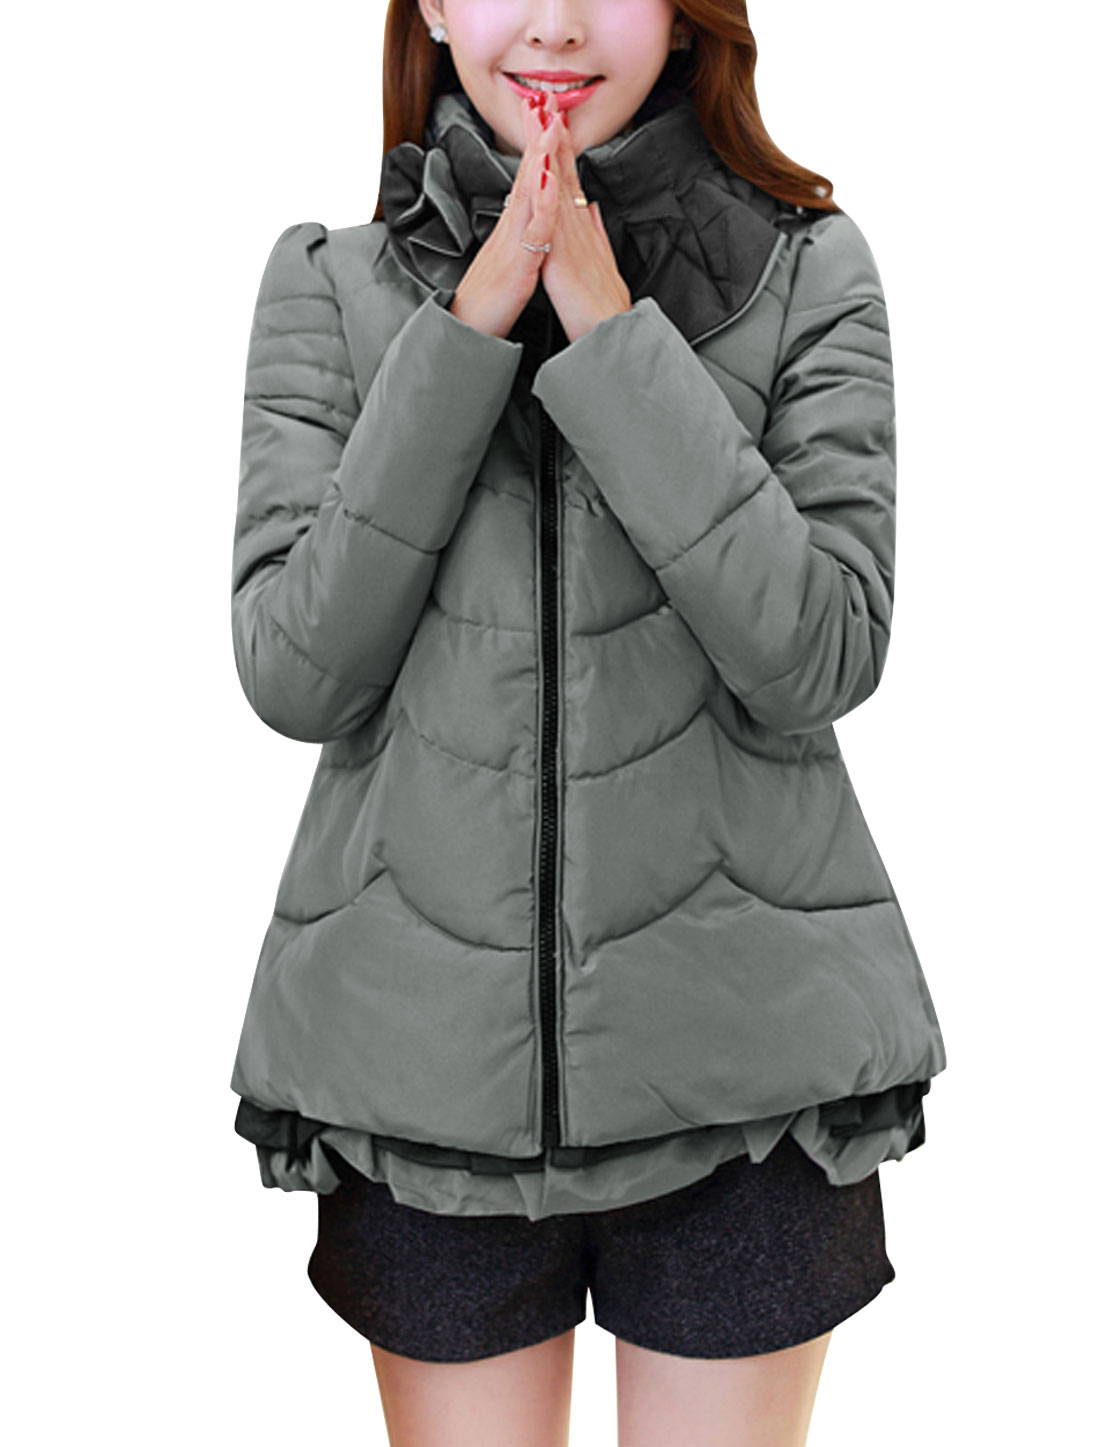 Women Flower Design Collar Zip-Up Side Pockets Down Jacket Gray Silver M